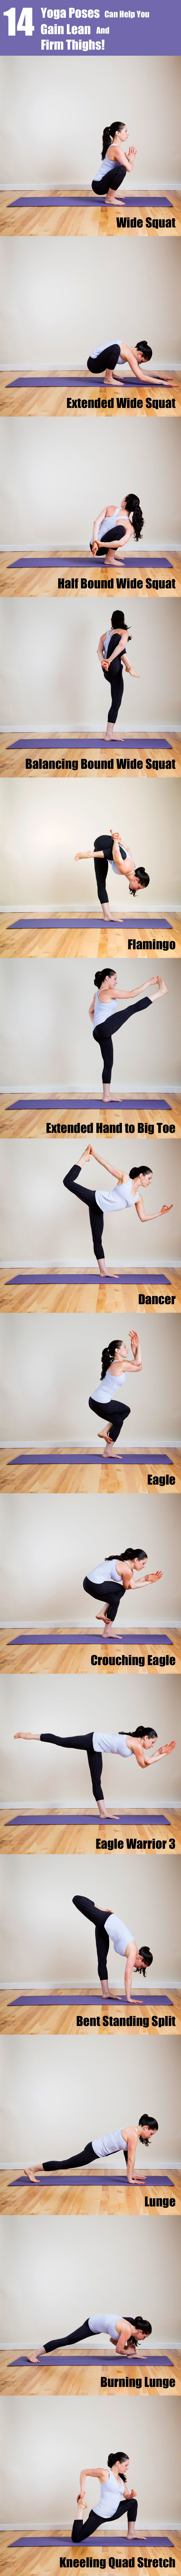 Yoga Poses For Beginners To Achieve A Detoxed And Healthy Body In 7 Days                                                                                                                                                                                 More